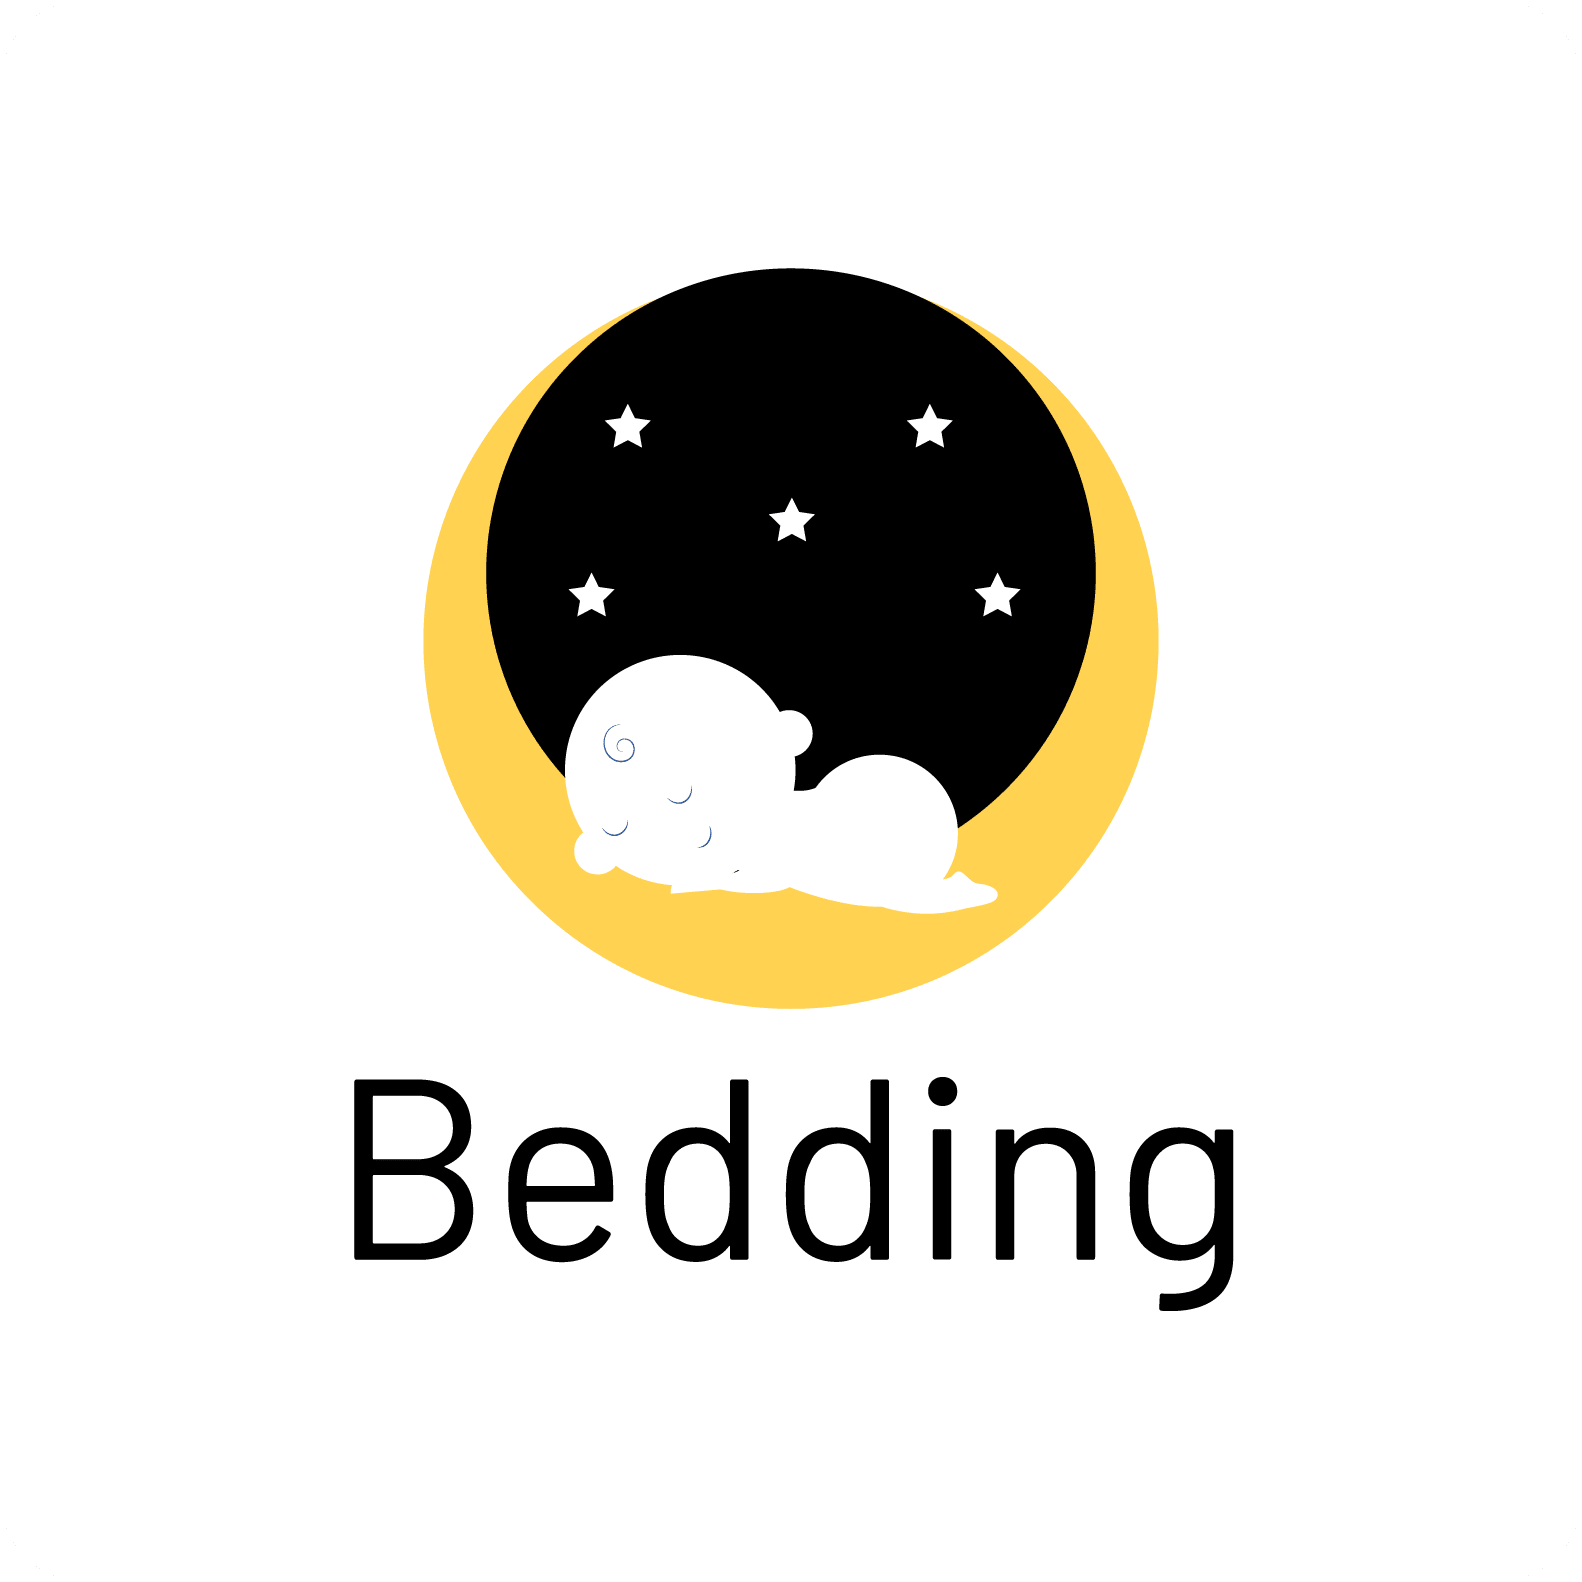 Image for bedding category